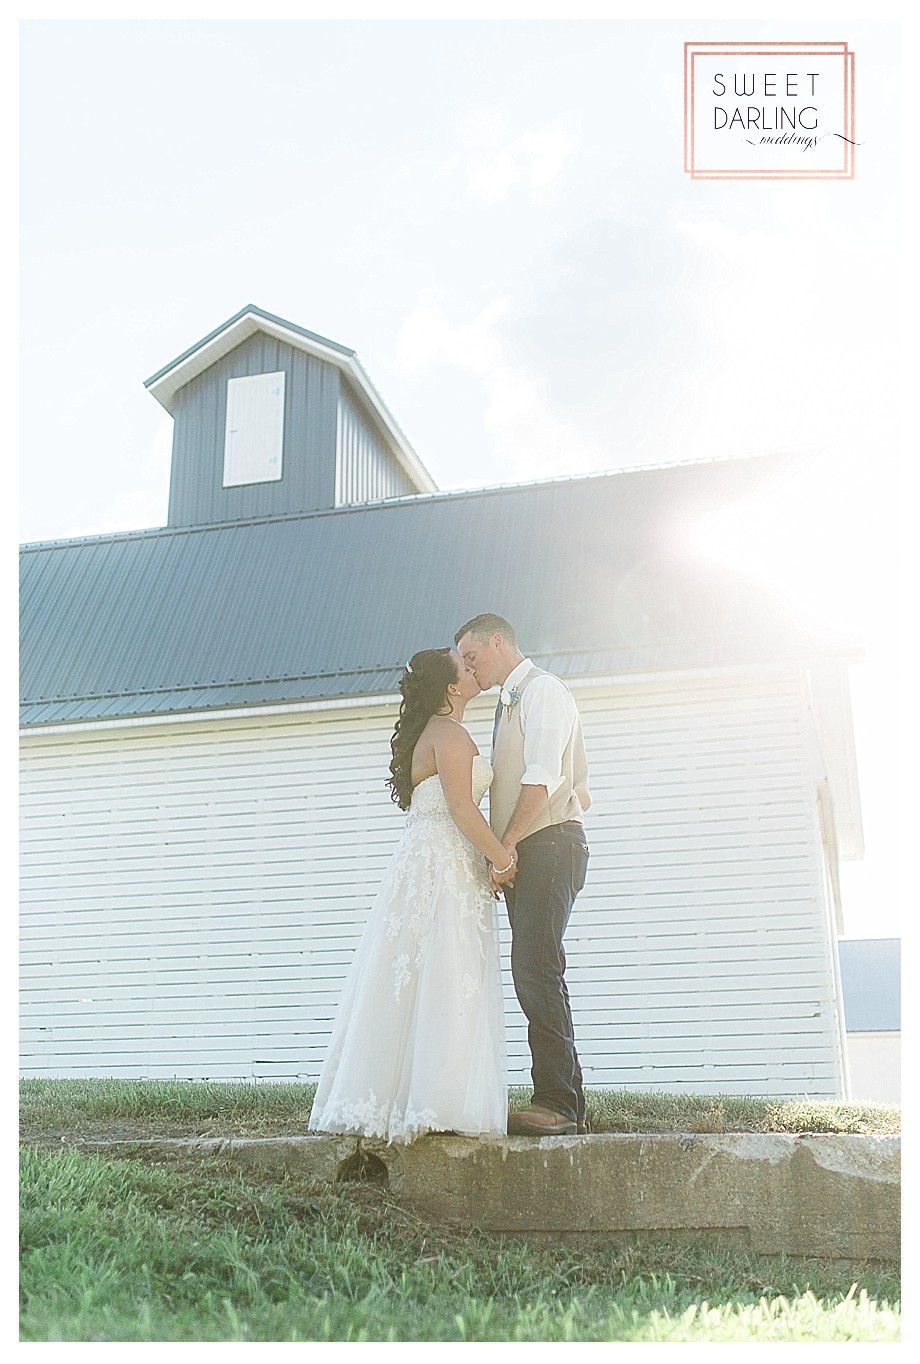 wedding-barn-farm-horses-sparkler-exit-Engelbrecht-Farm-Paxton-Illinois-Sweet-Darling-Weddings-Photographer_0511